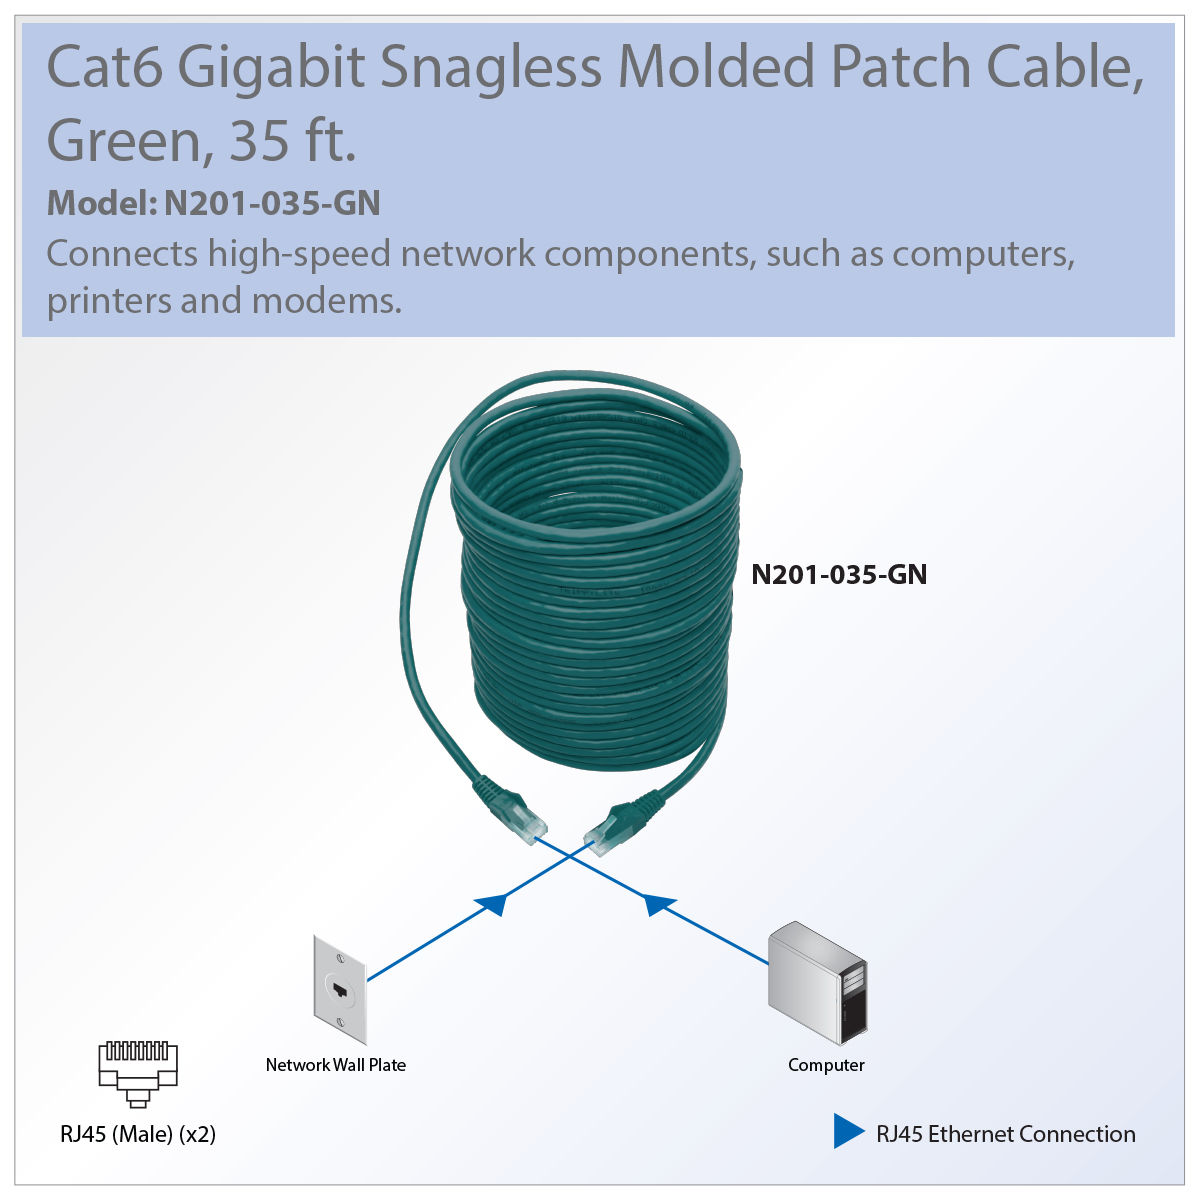 Tripp Lite Cat6 GbE Snagless Molded Patch Cable UTP Green RJ45 M/M ...